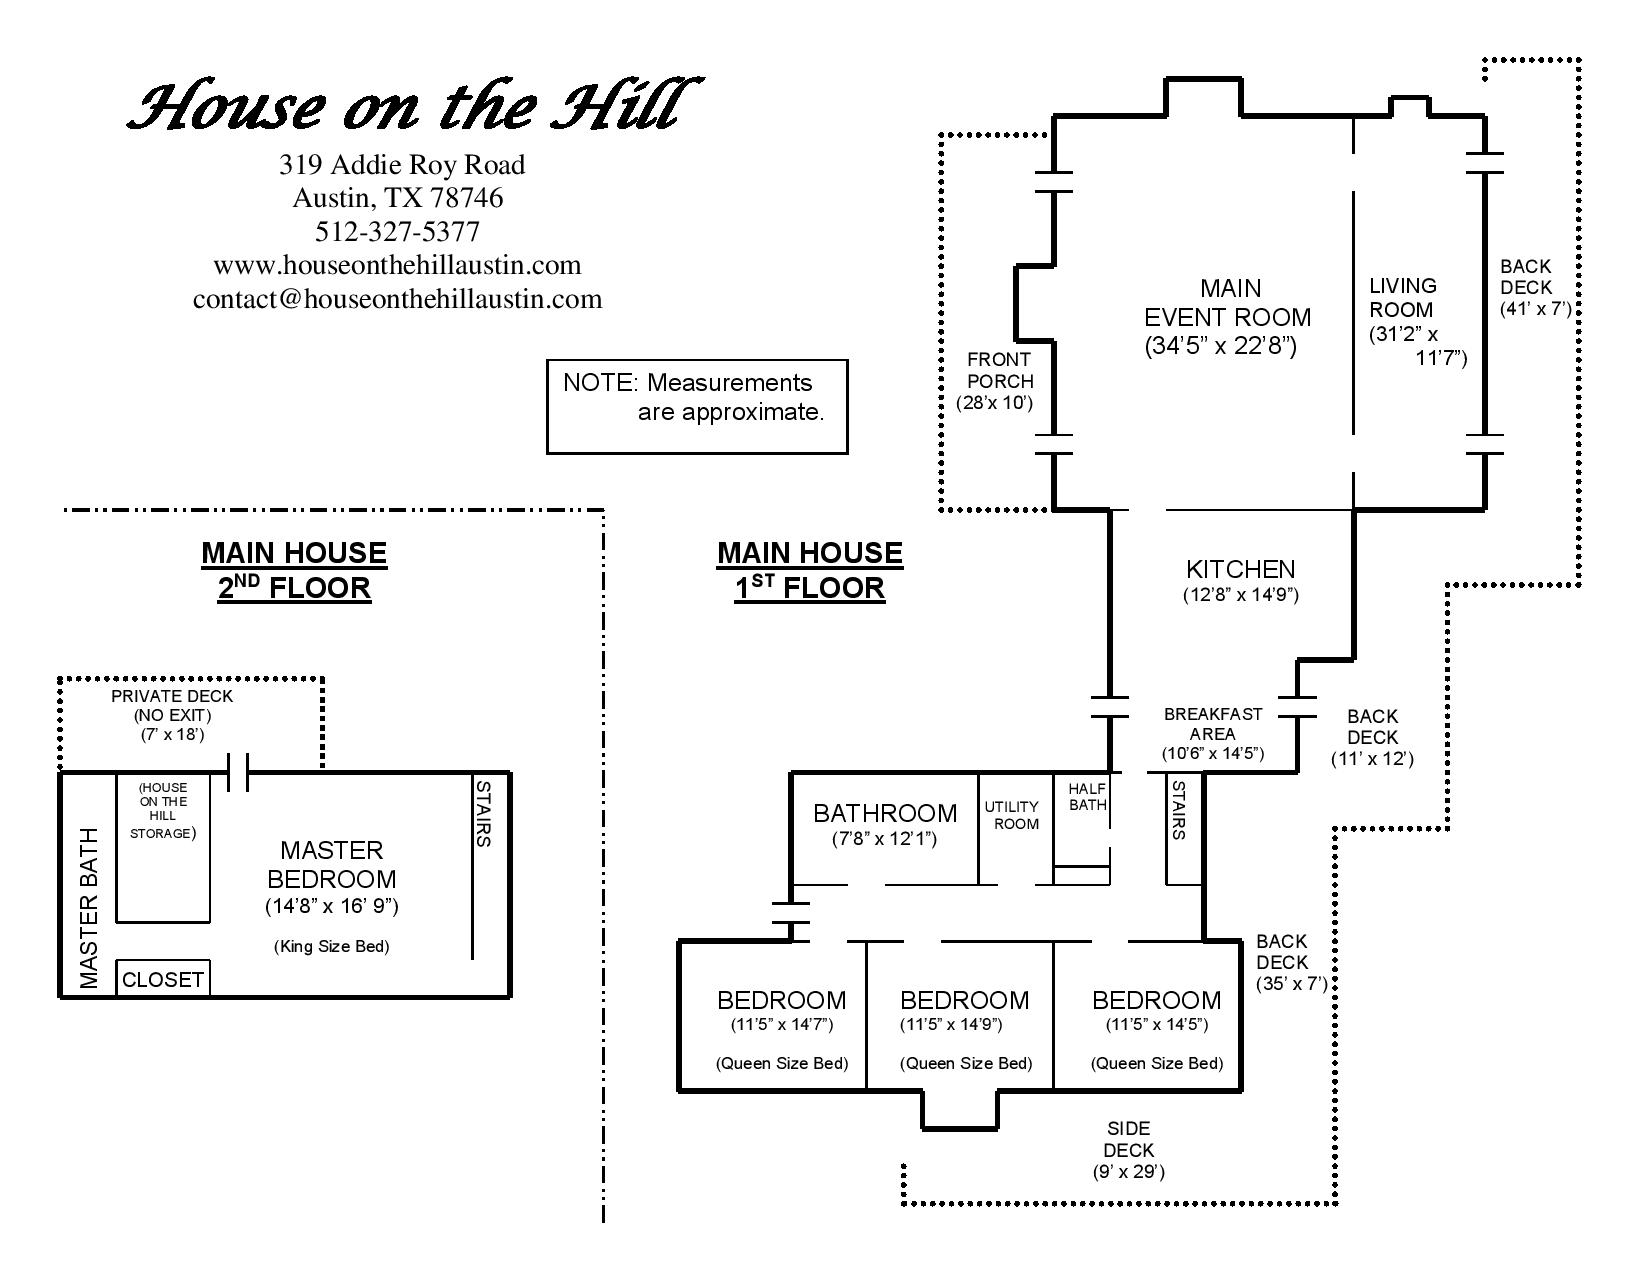 floor plans for house maps amp floor plans house on the hill 17659